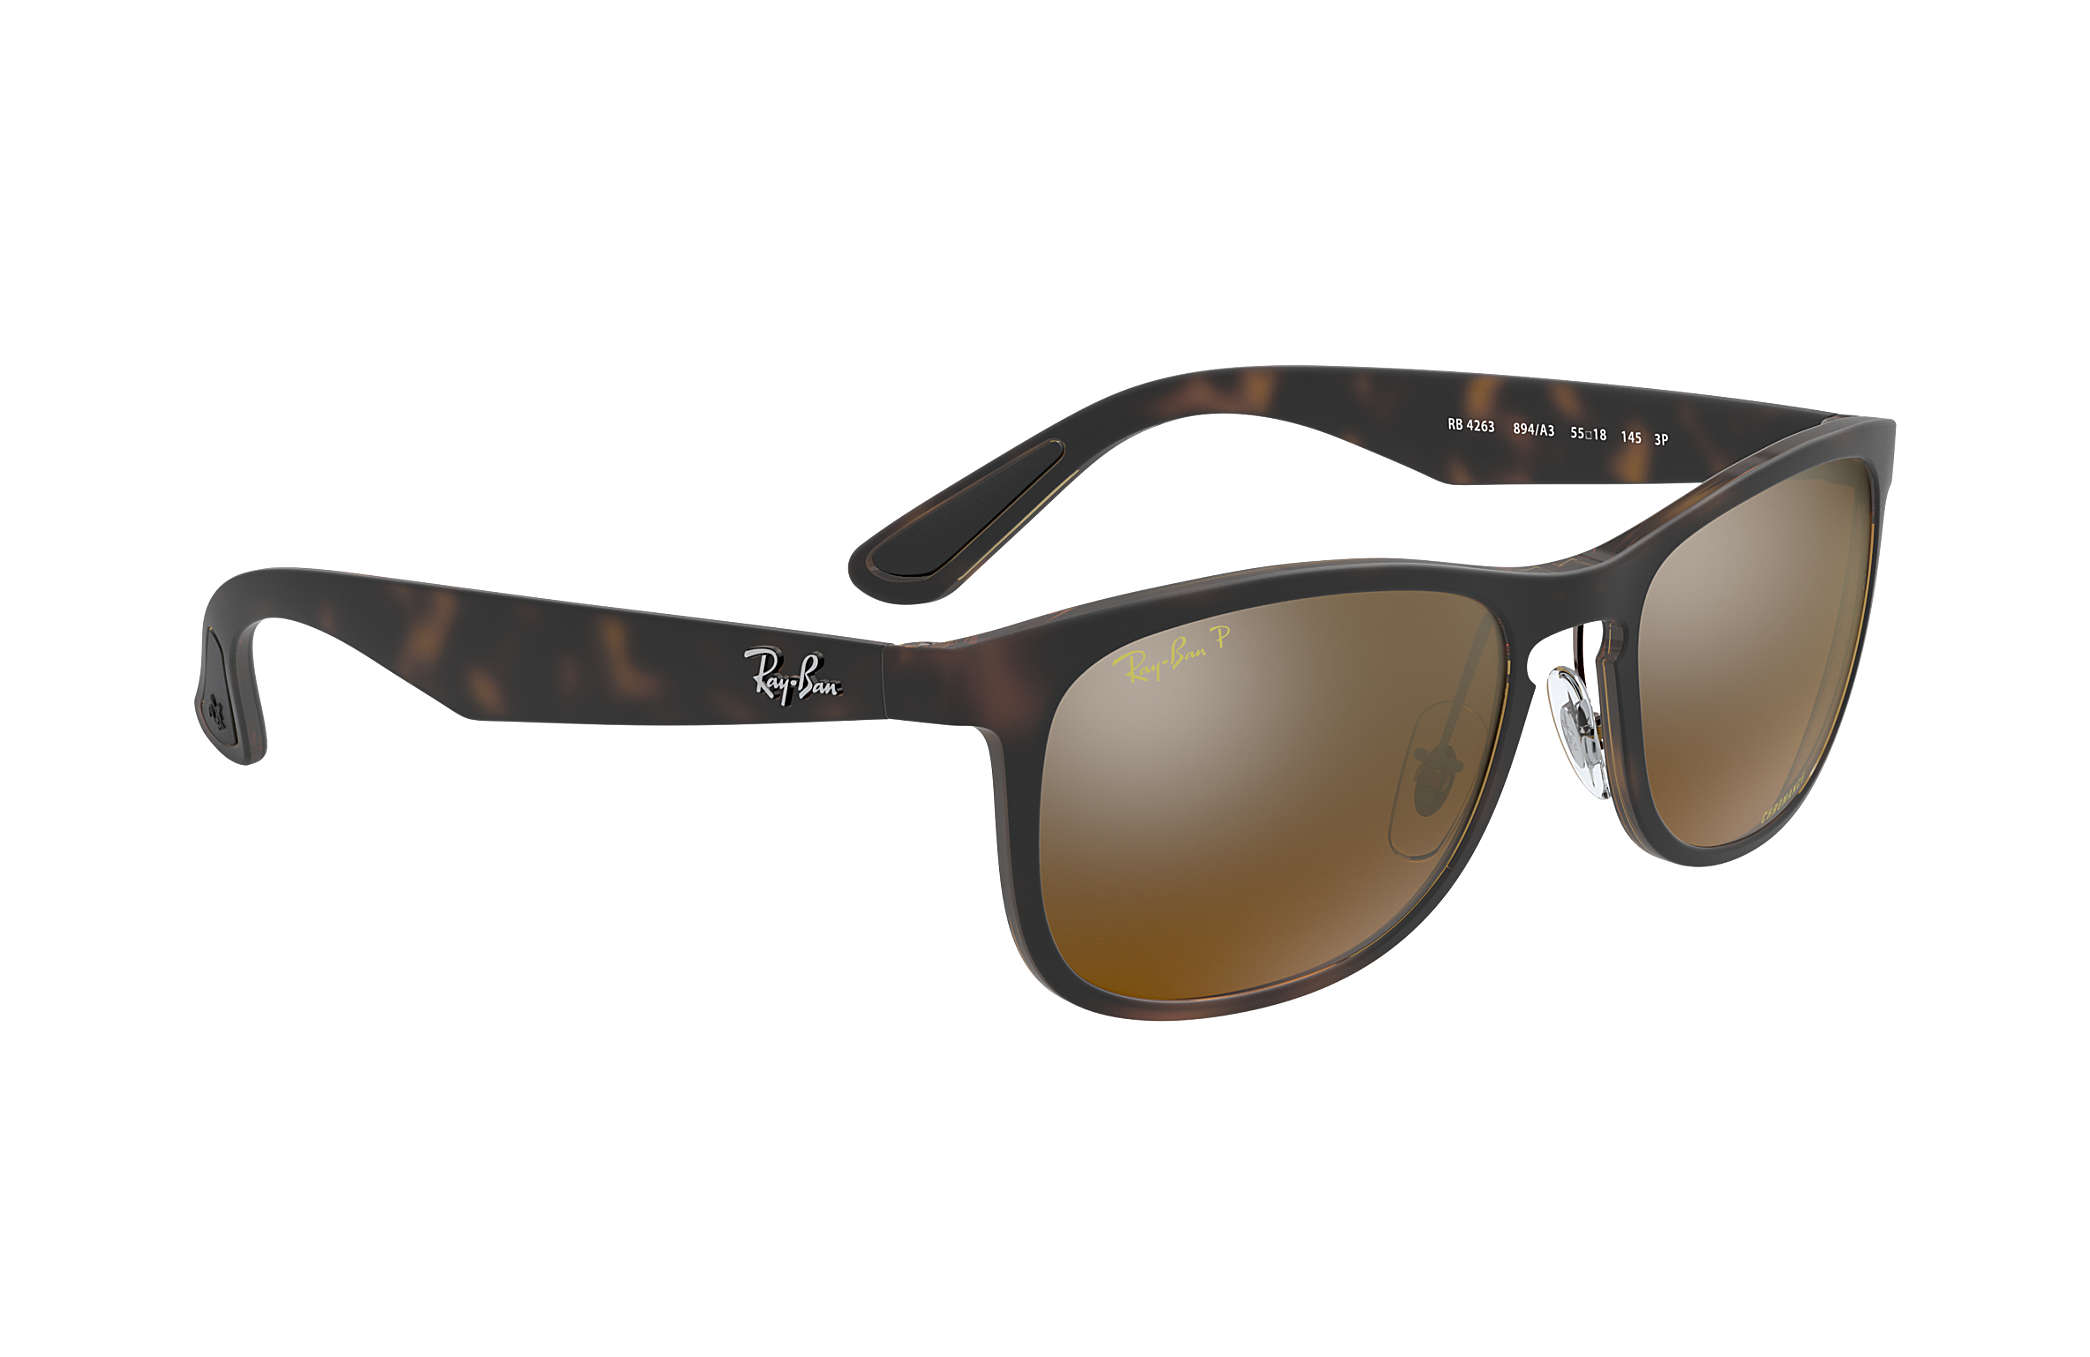 0acbf5b5b2 Ray-Ban Rb4263 Chromance RB4263 Tortoise - Nylon - Bronze Polarized ...